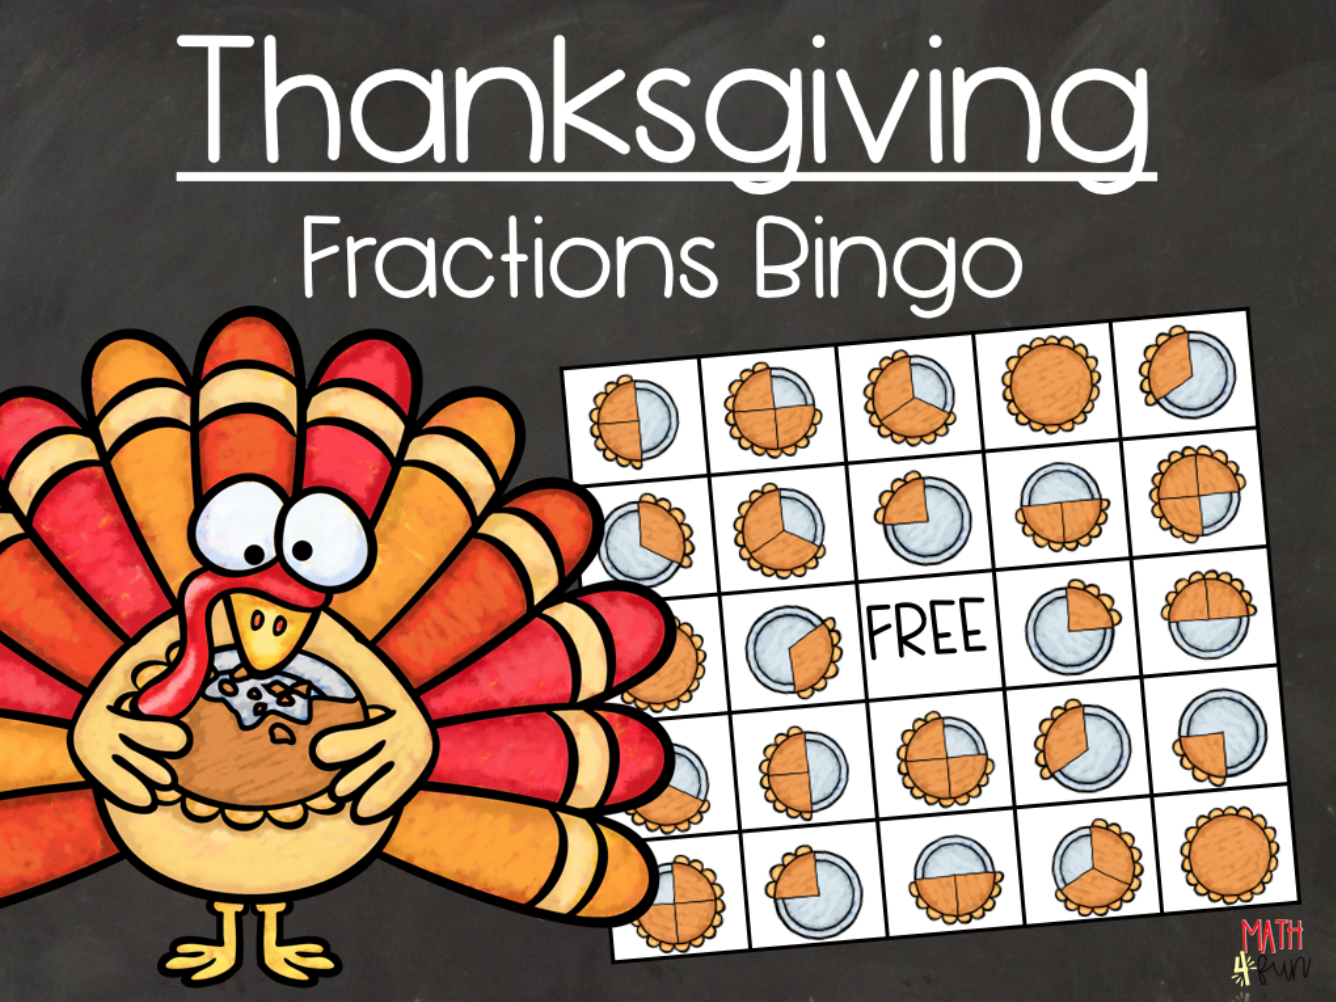 Thanksgiving Fraction Bingo From Math 4 Fun